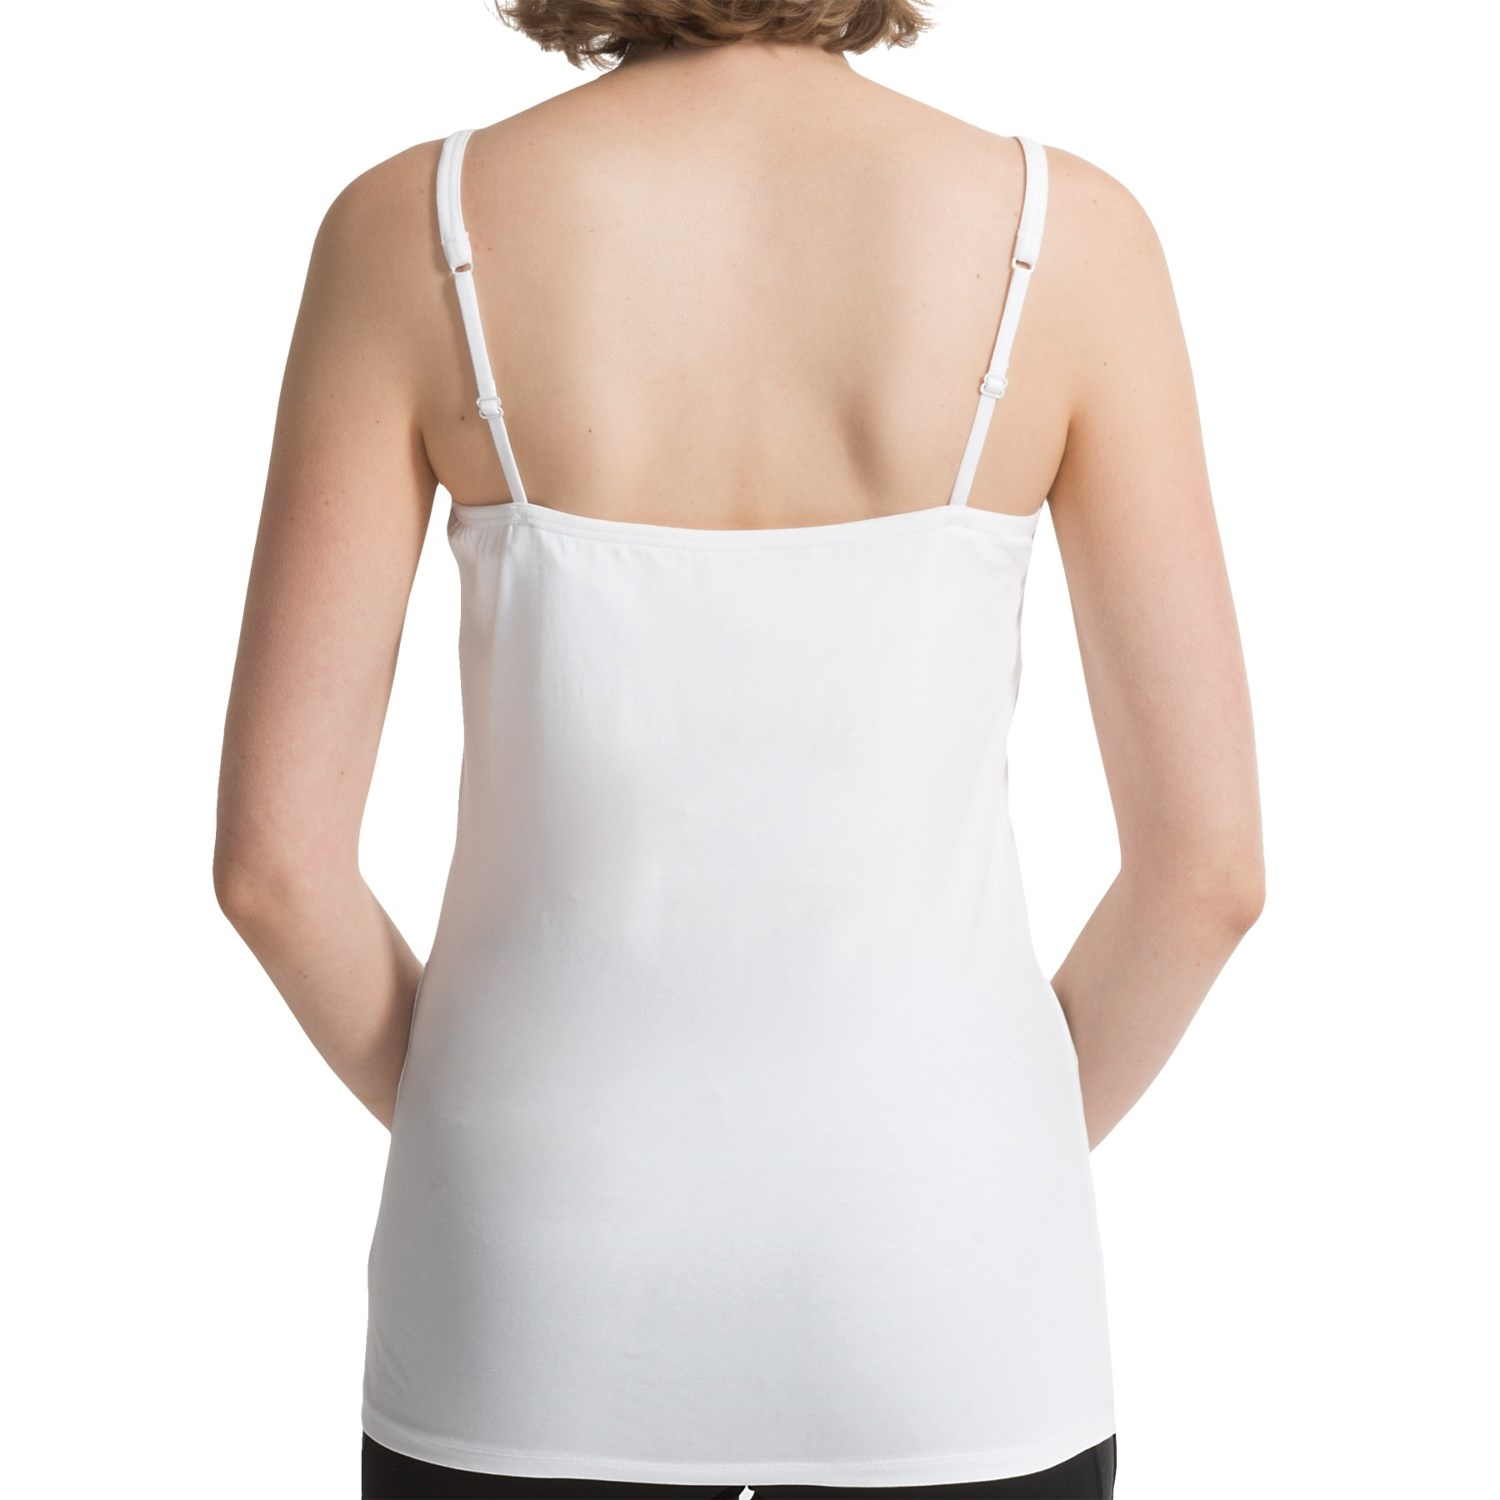 Pact Everyday Camisole For Women 9463t Save 33